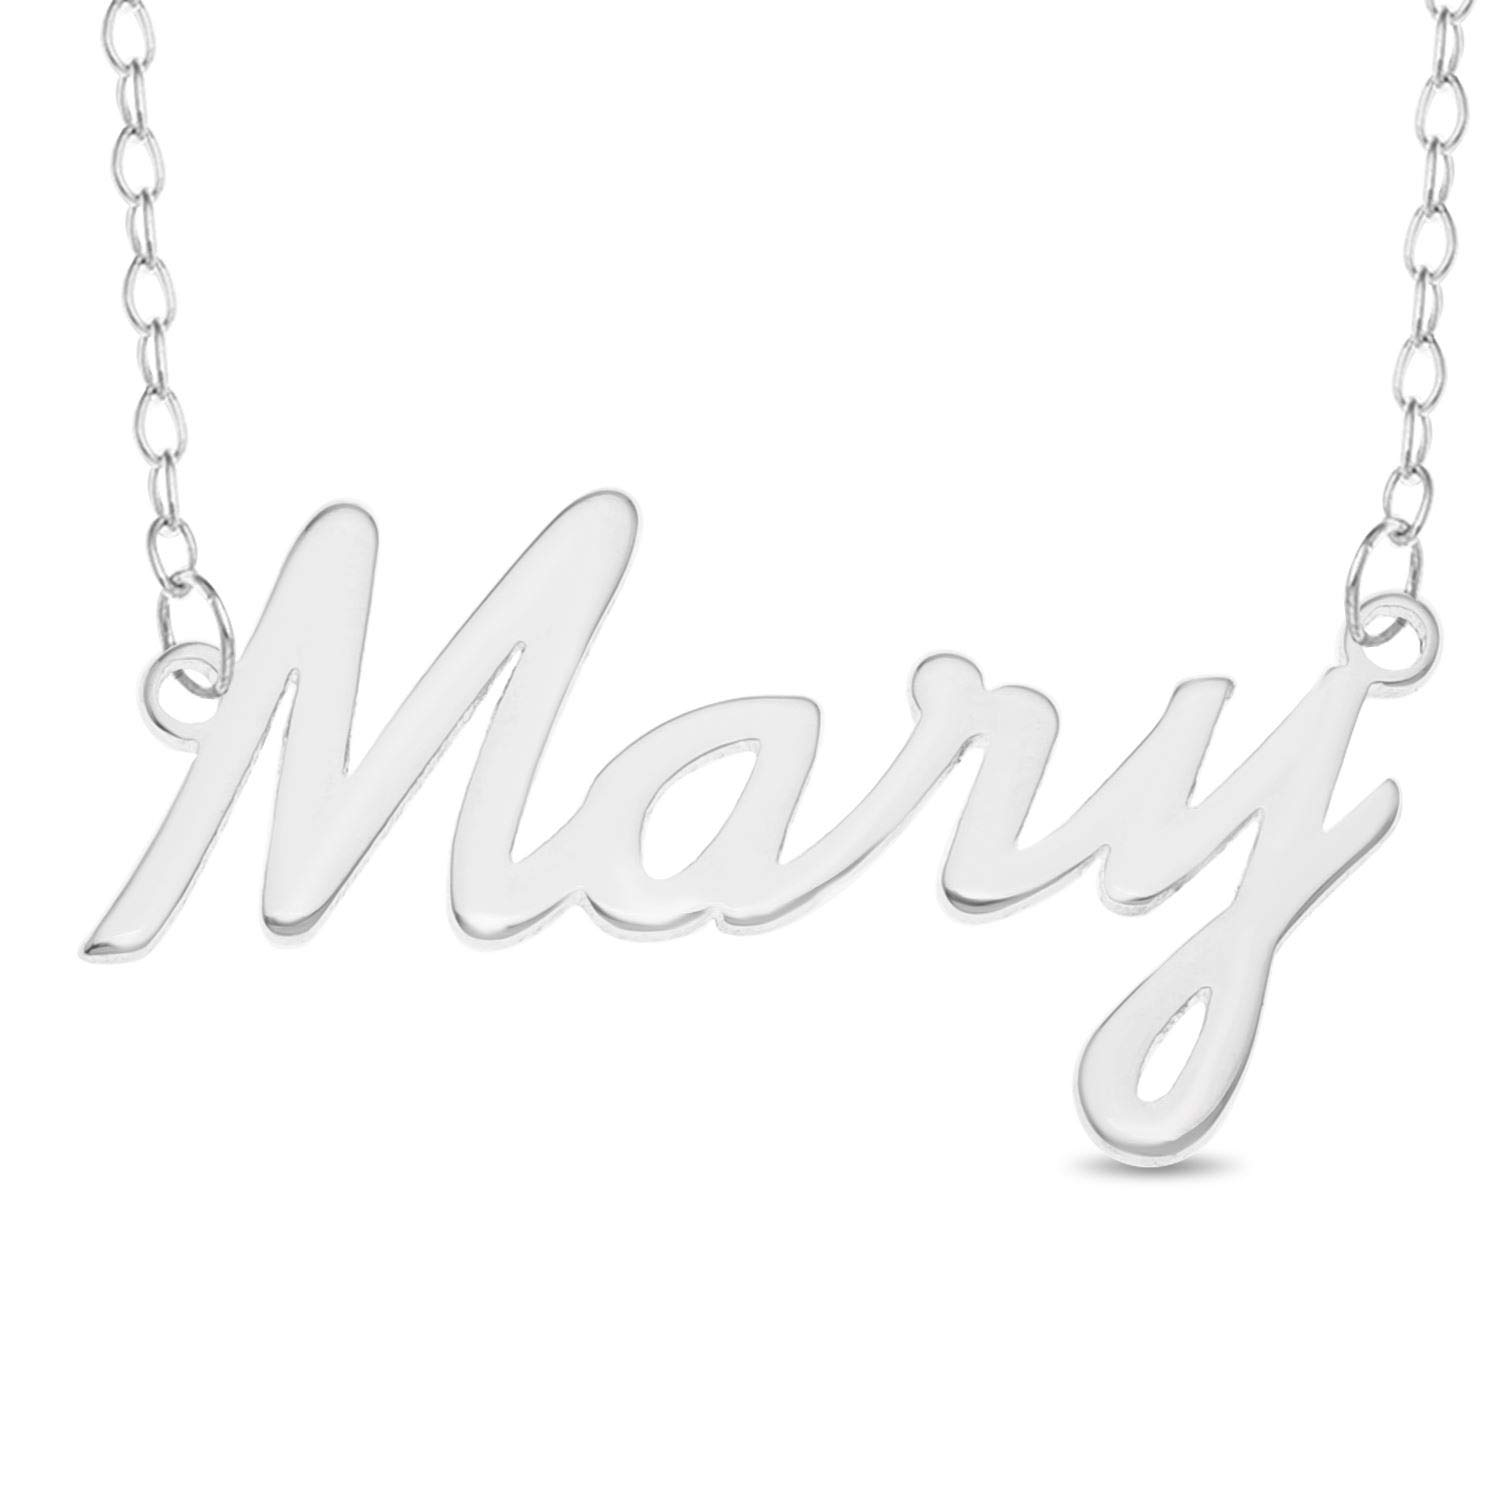 Personalised MARY 925 Sterling Silver Necklace Nameplate Pendant Jewelry Gift